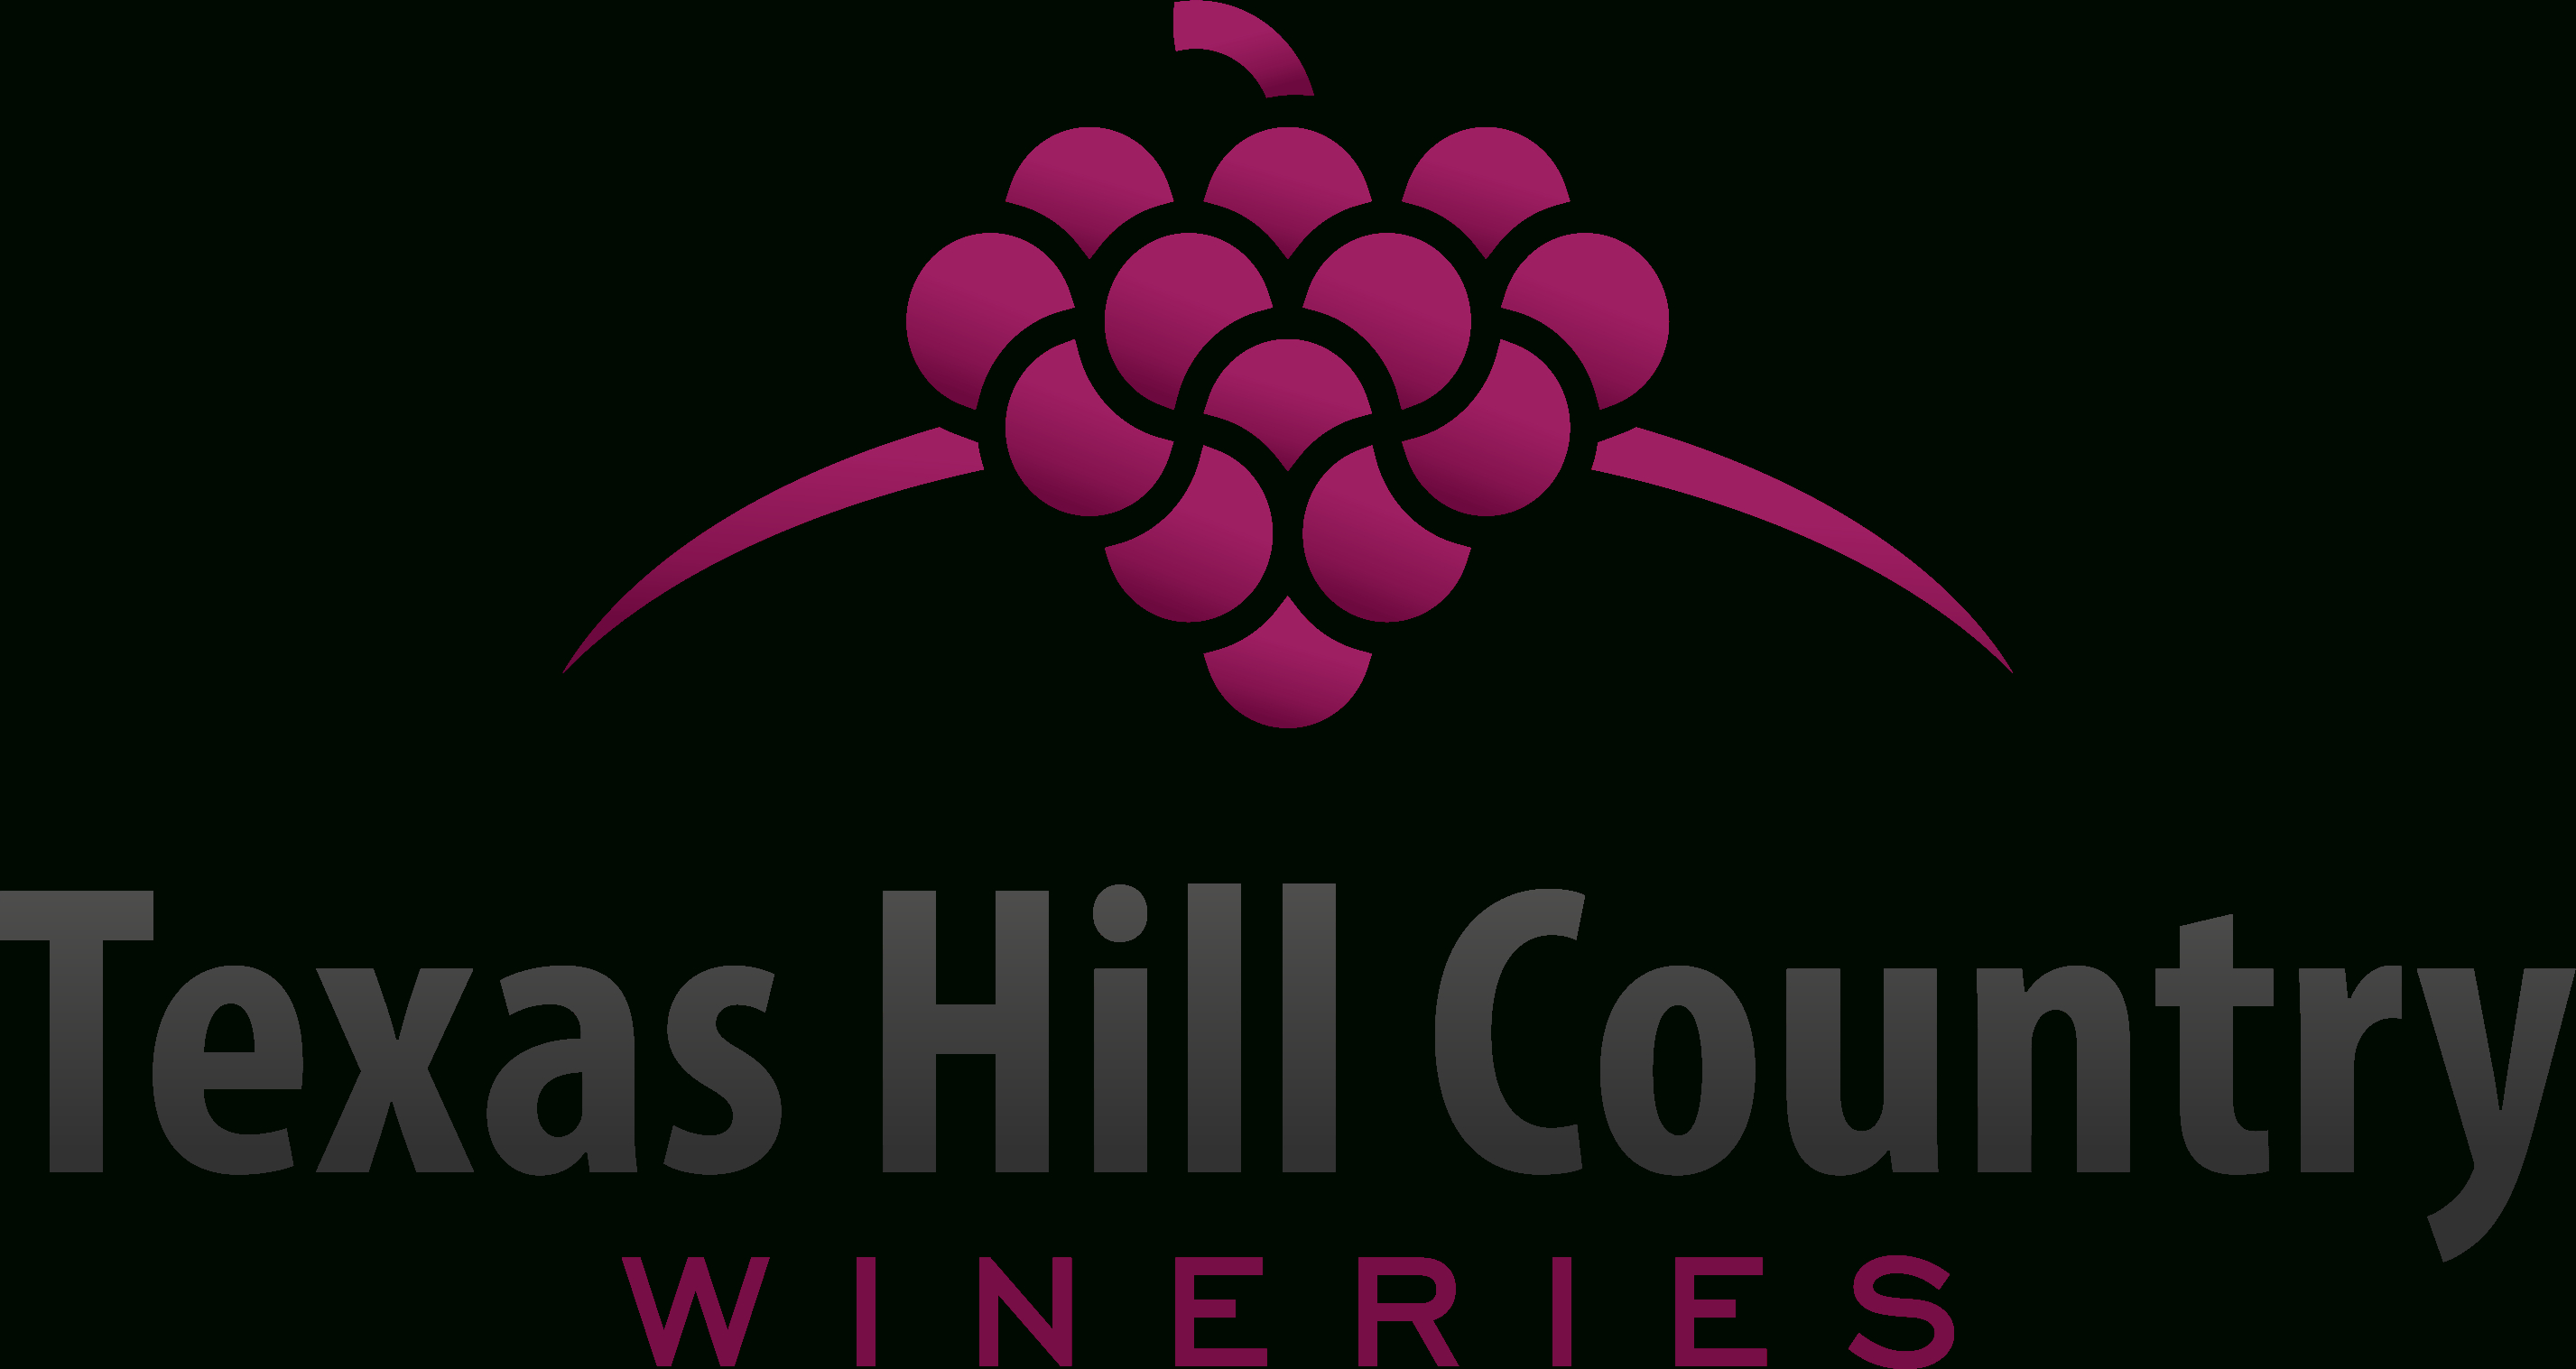 Wine Lovers Celebration 2019/02/08 - 2019/02/24 - Texas Hill Country - Texas Hill Country Wineries Map